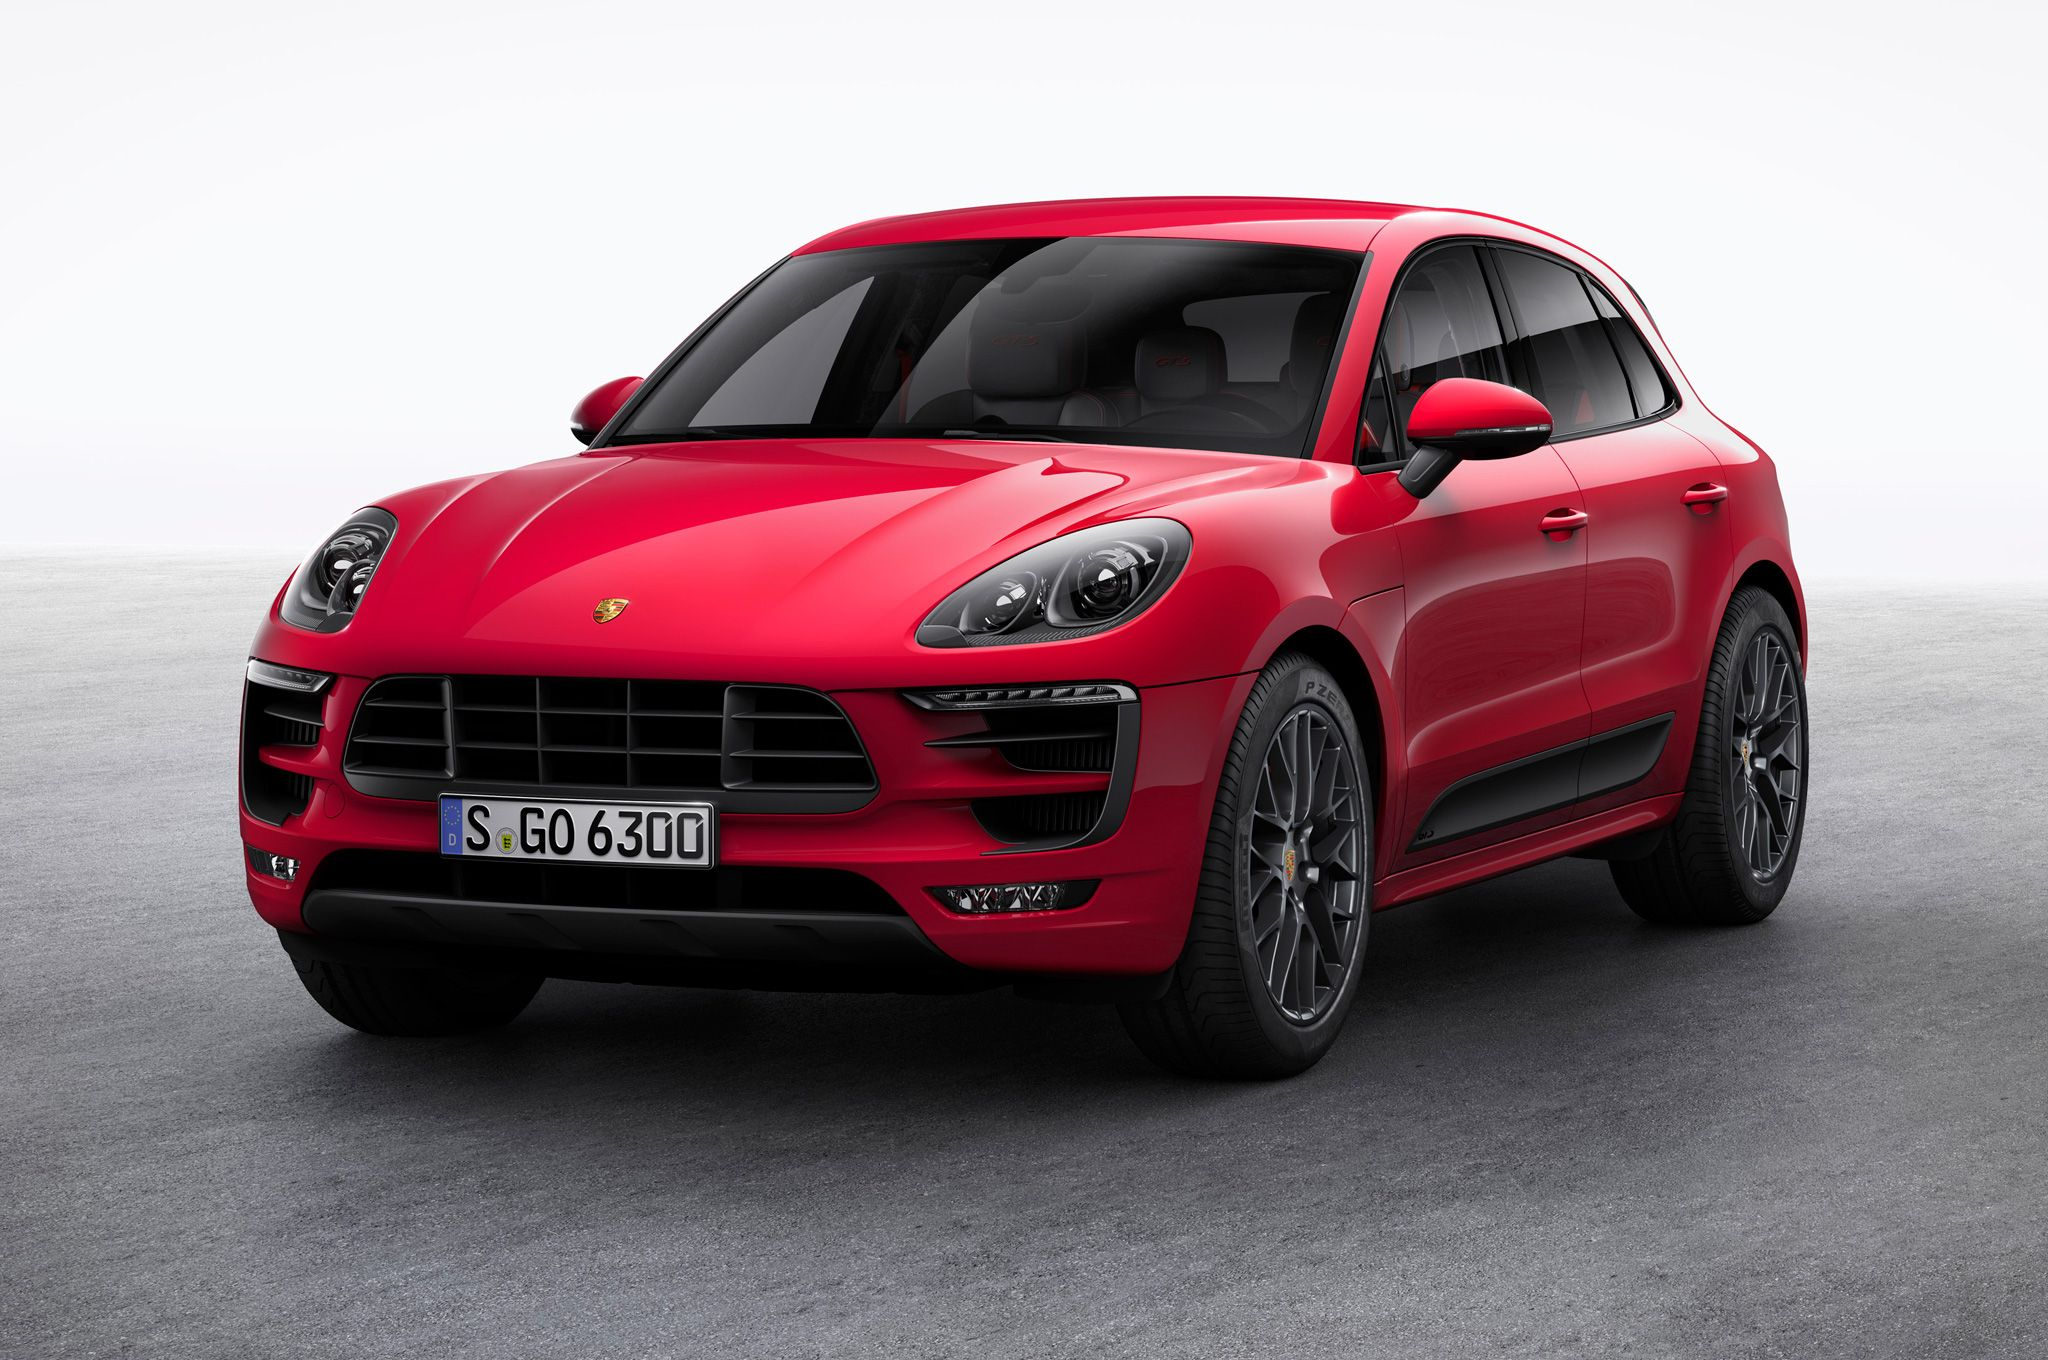 Porsche Macan Specifications, Price, Mileage, Pics, Review